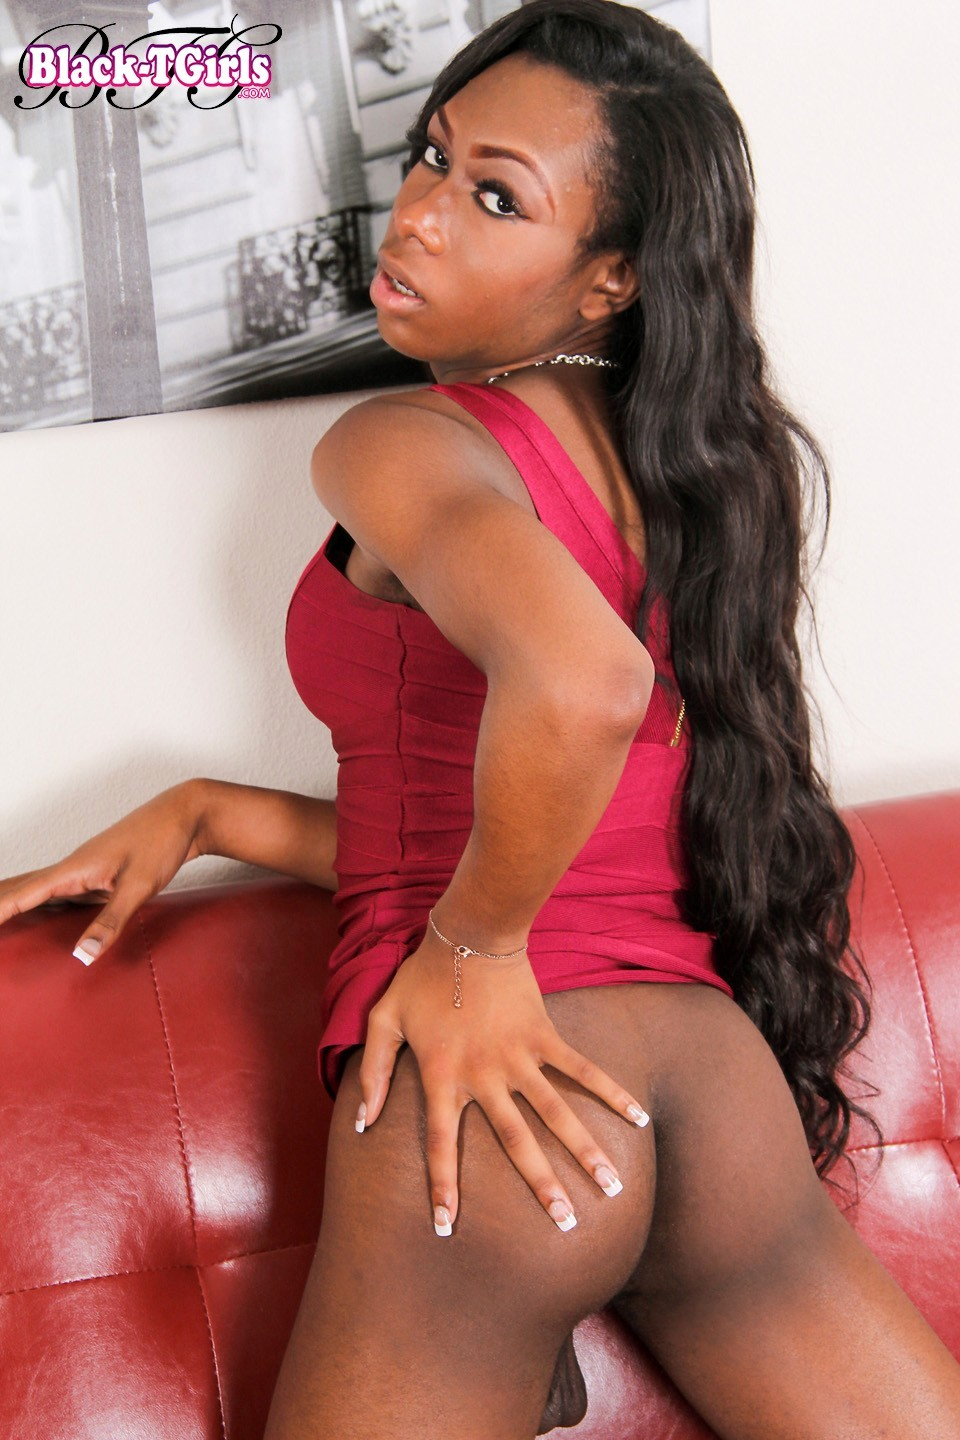 eryn skyy exposign her inviting black ass hole